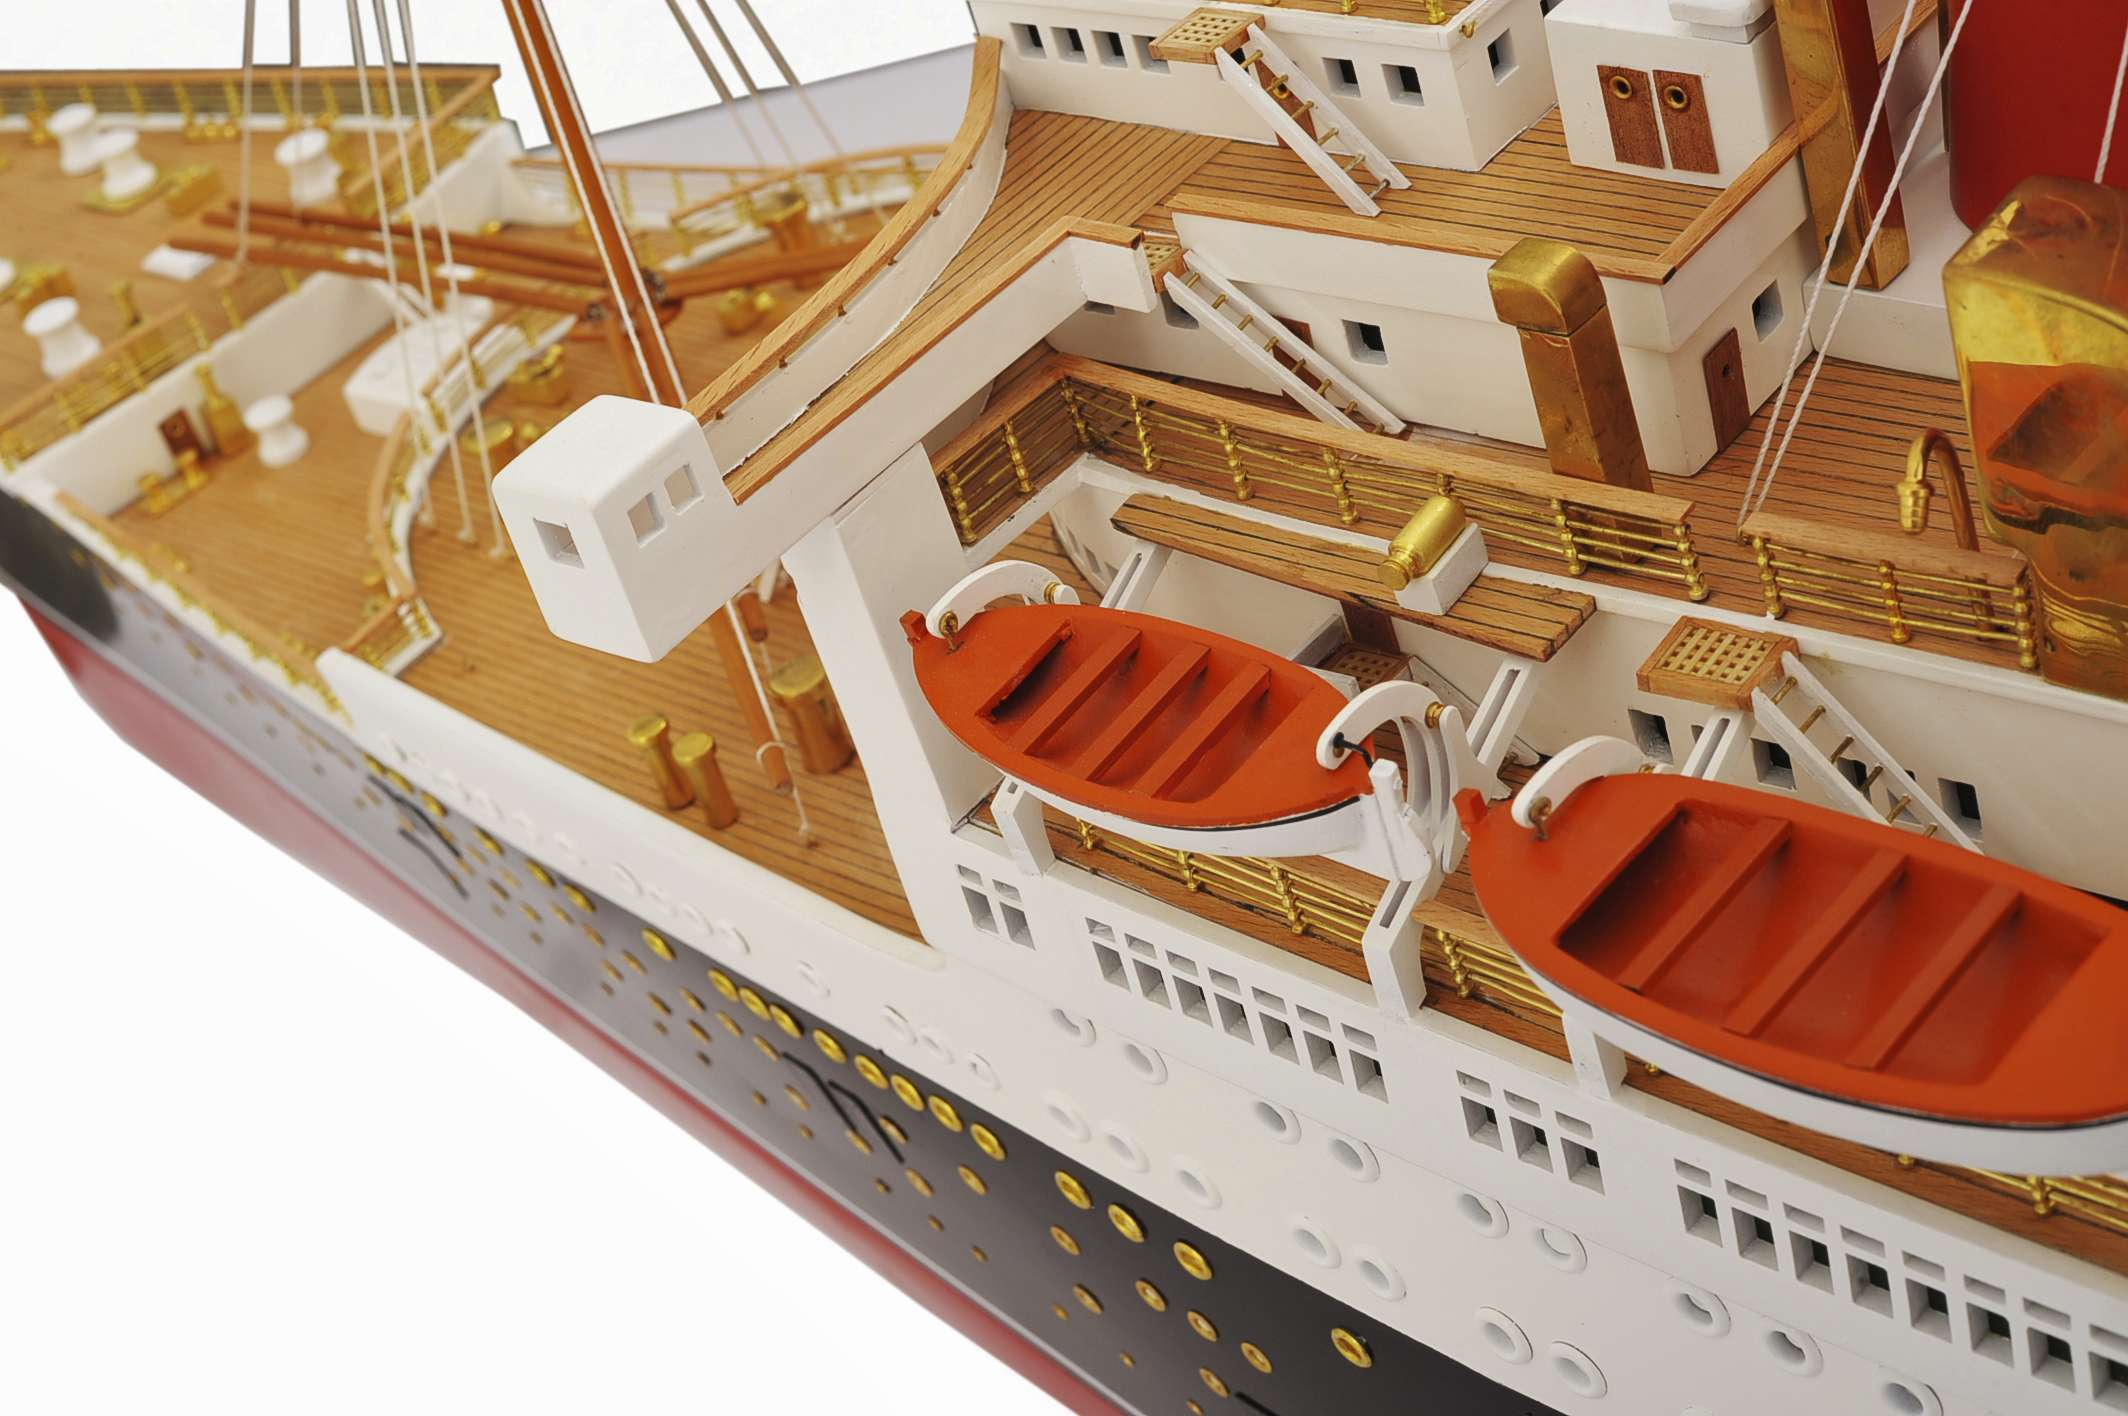 1484-4990-RMS-Queen-Mary-Model